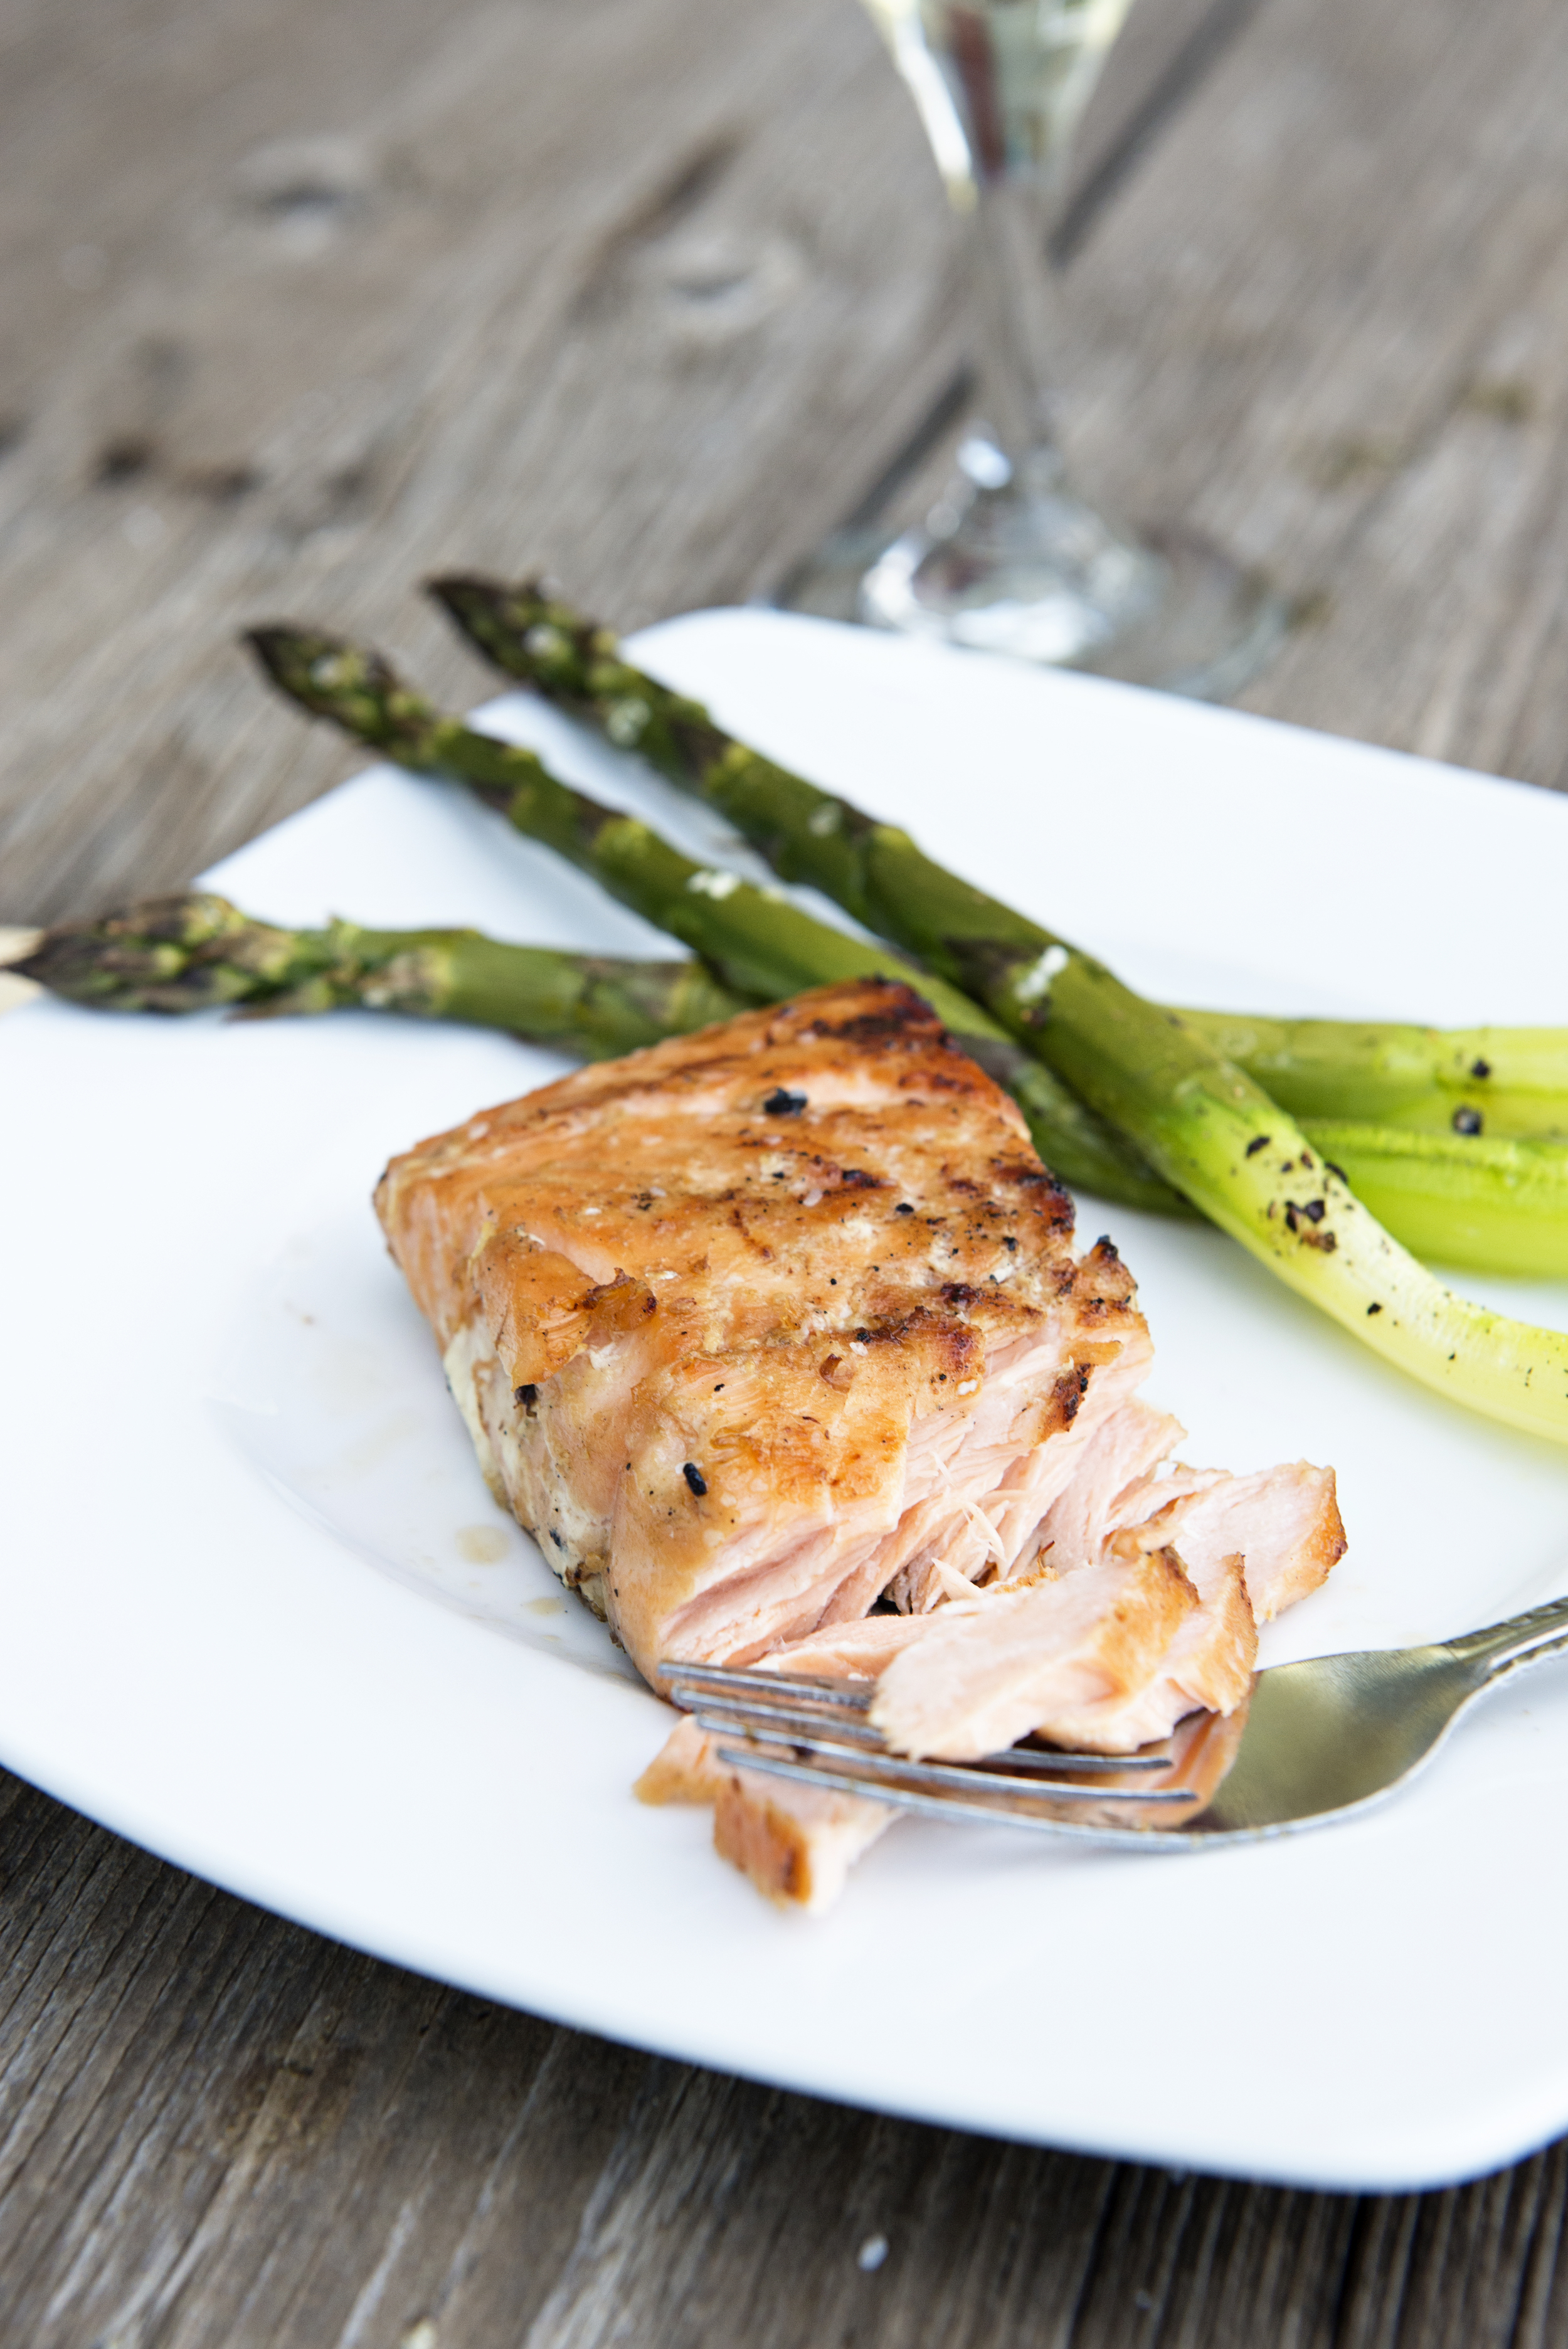 Whiskey Ginger Grilled Salmon (photo courtesy of The National Salmon Council and Dine & Dish)